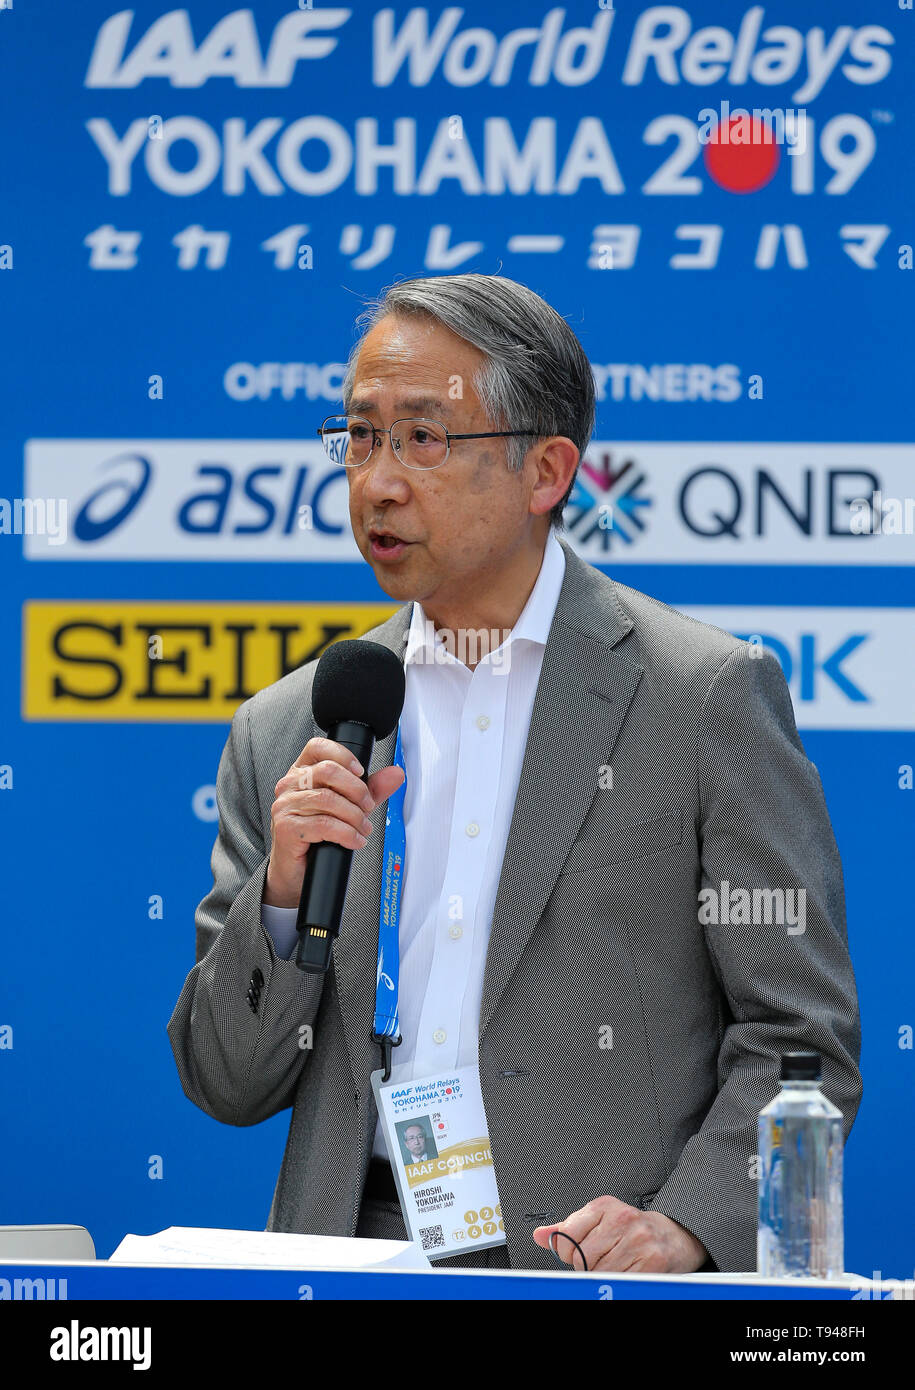 YOKOHAMA, JAPAN - MAY 10: JAAF President Hiroshi Yokokawa during the official press conference of the 2019 IAAF World Relay Championships at the Nissan Stadium on May 10, 2019 in Yokohama, Japan. (Photo by Roger Sedres for the IAAF) Stock Photo